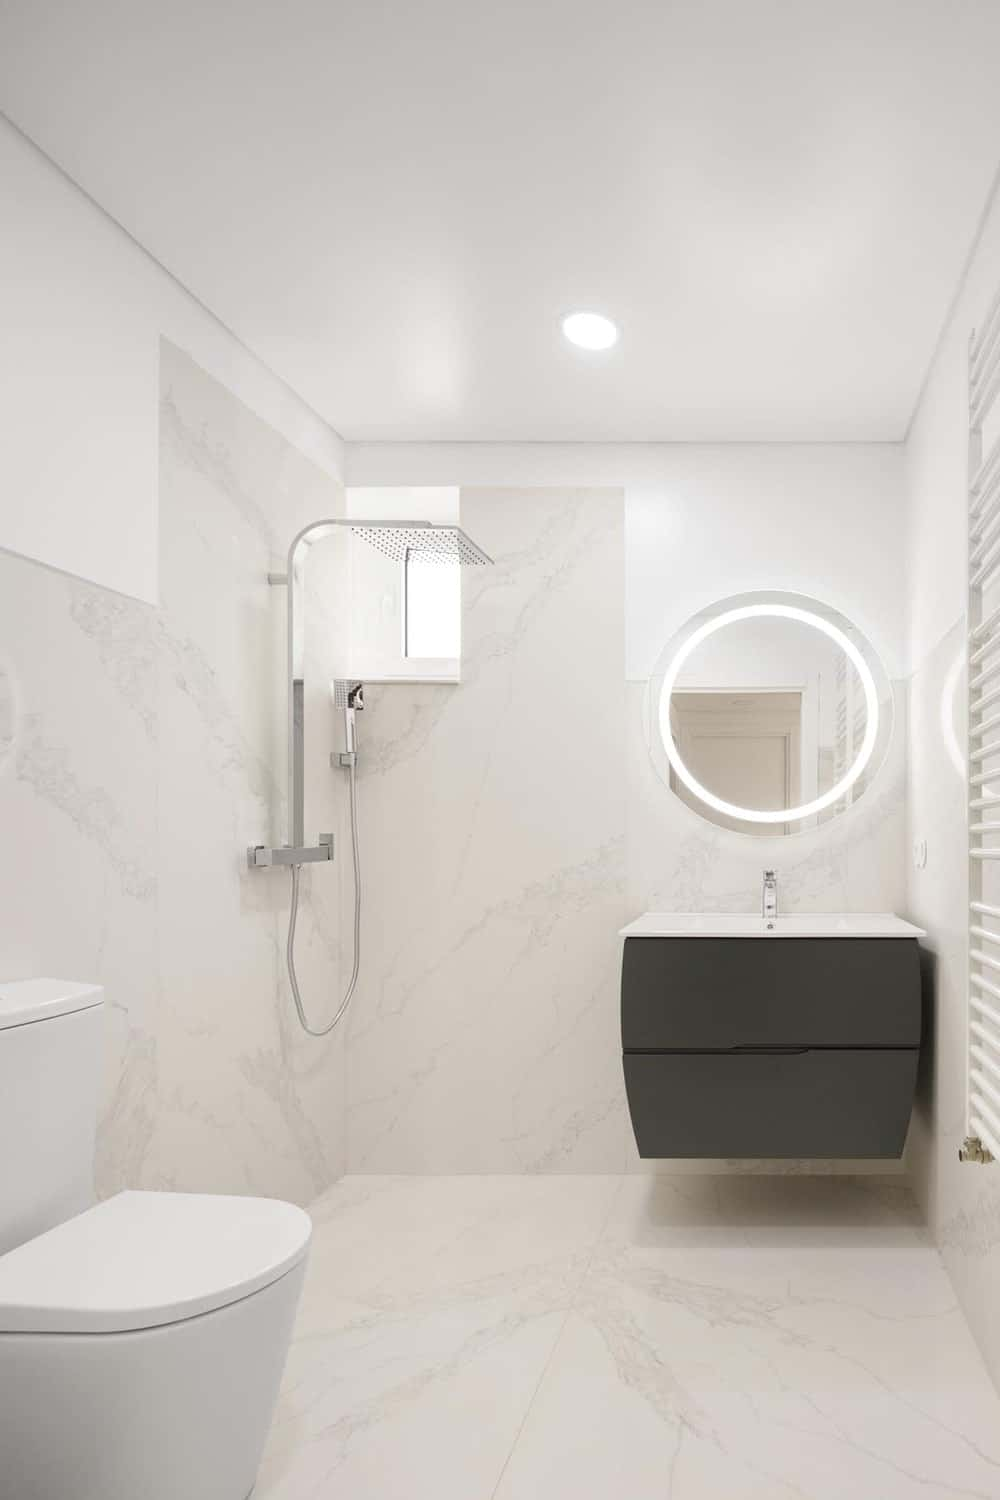 This is a minimalist bathroom that has consistent bright beige marble on its floor and walls. This makes the black floating vanity stand out topped with a round vanity mirror.